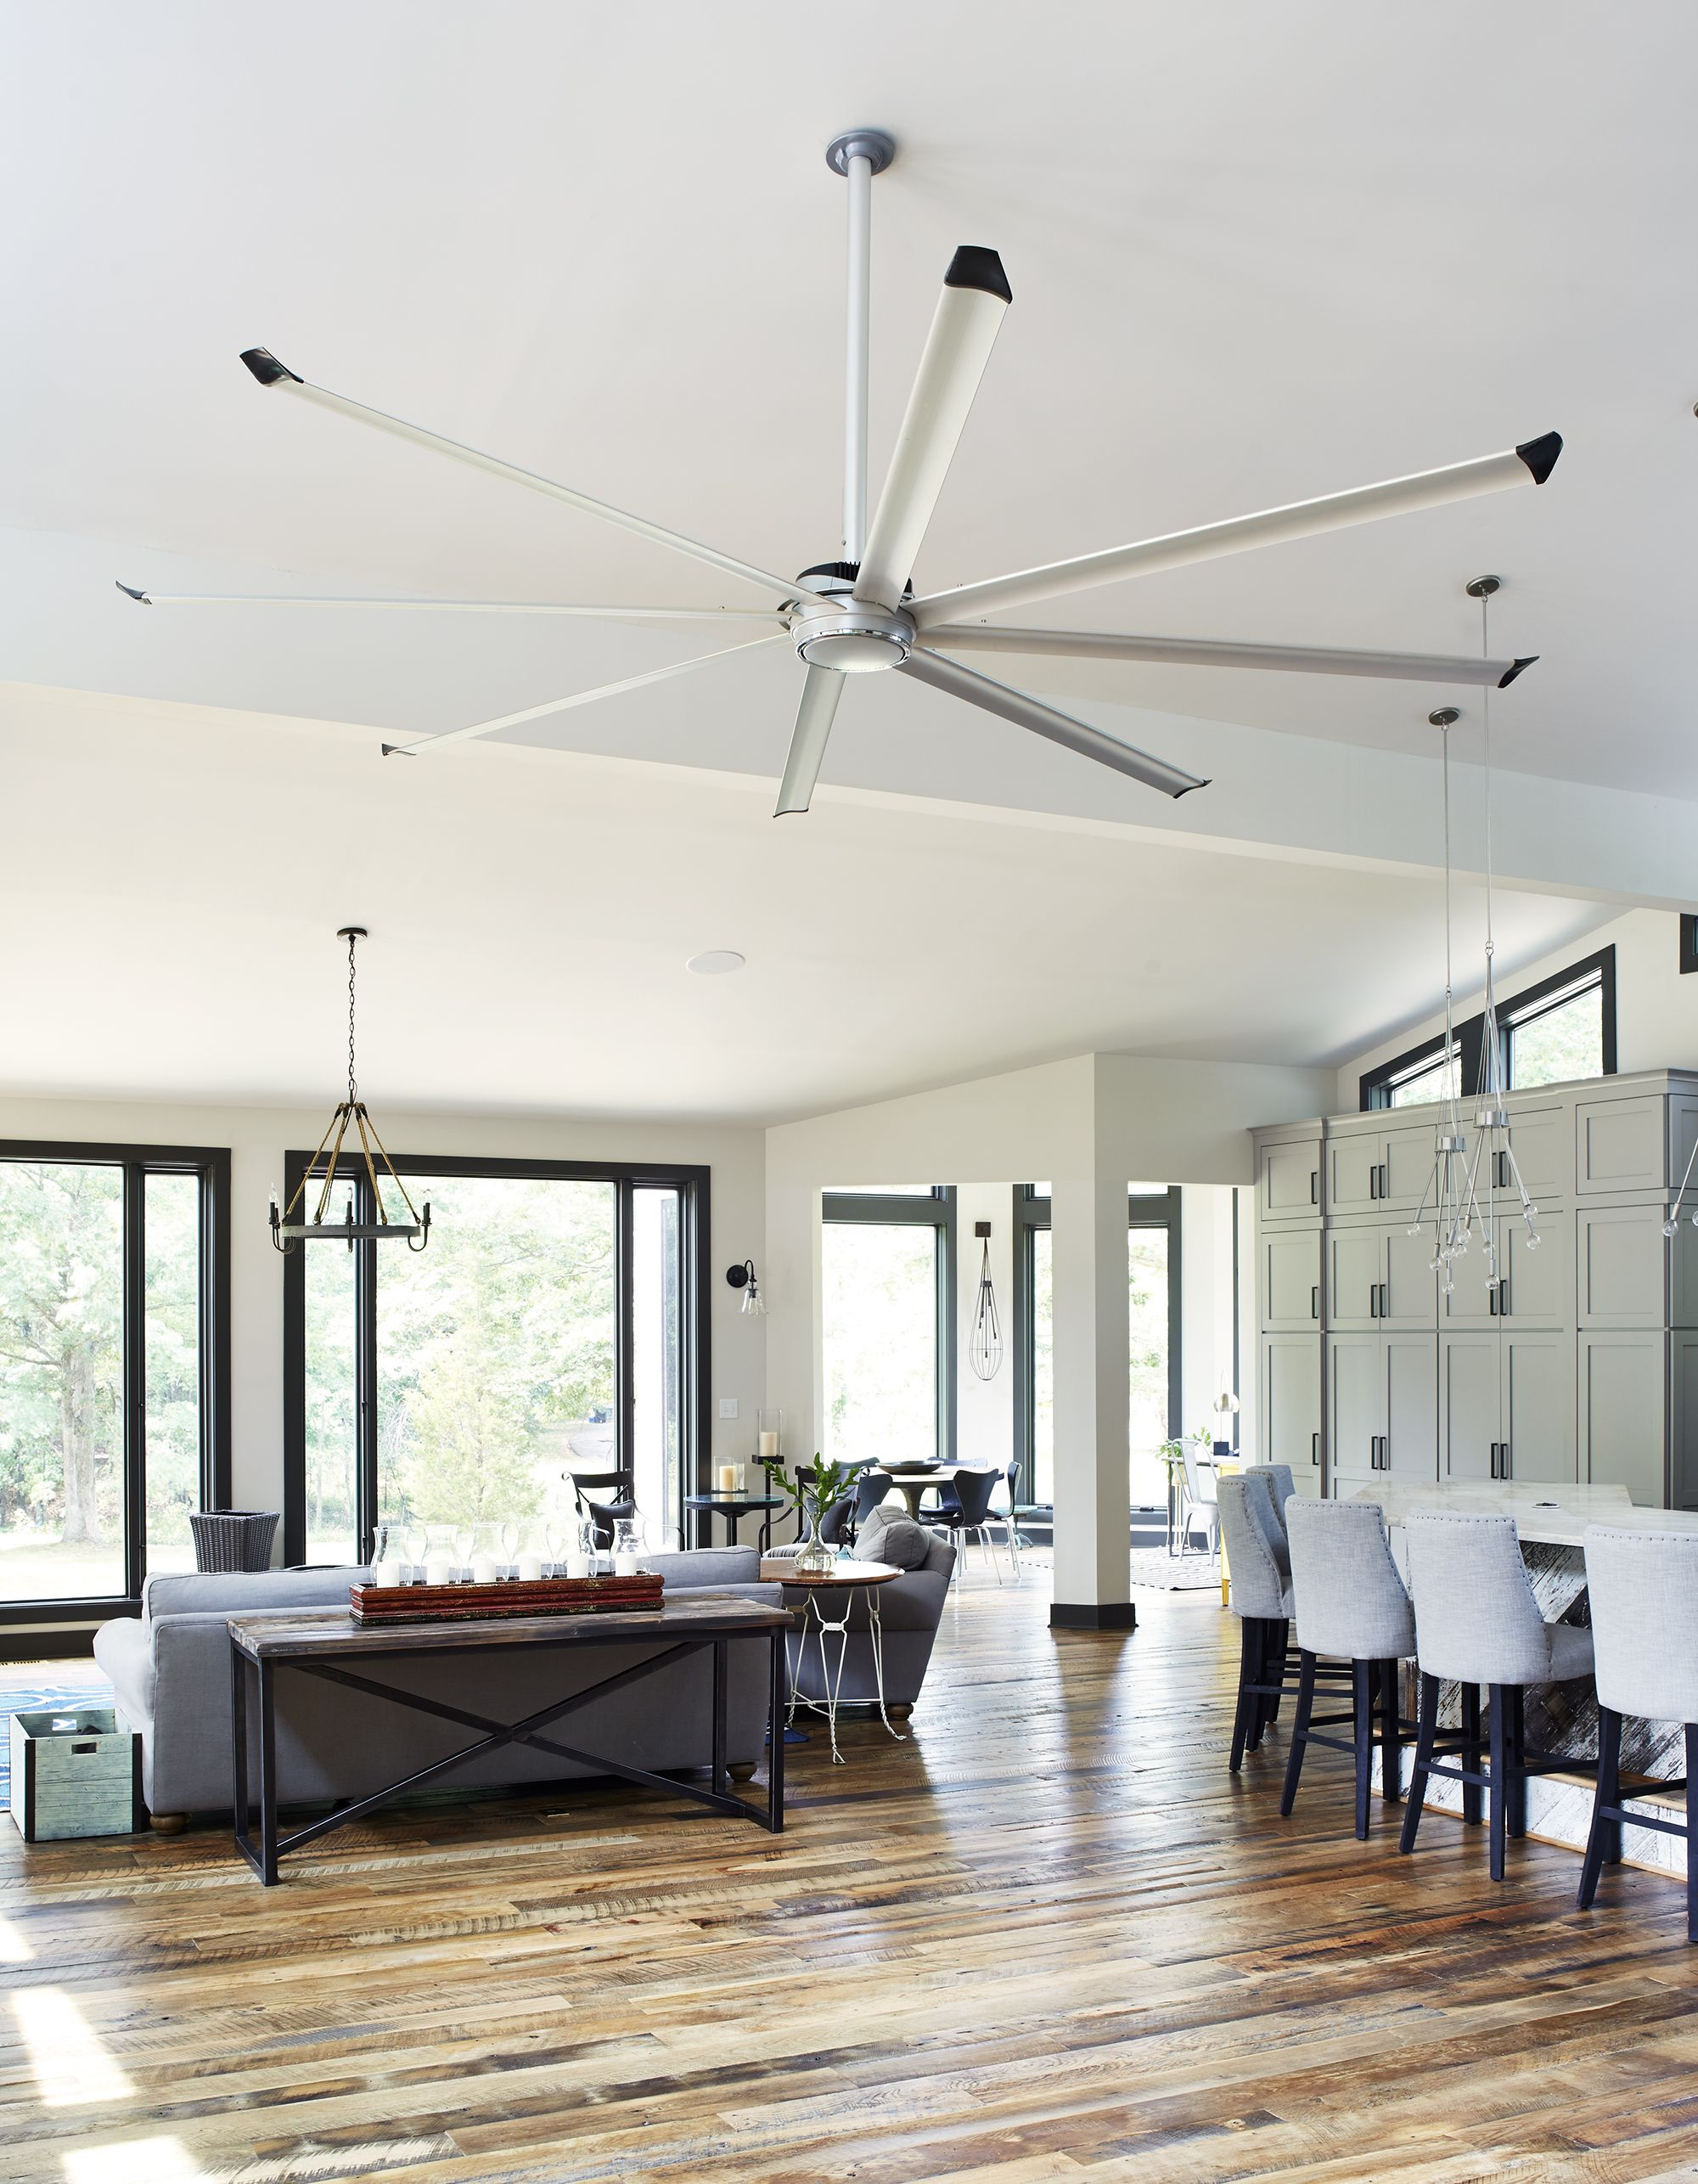 Essence Ceiling Fan Installed In The Salhab Residence Living Room. #essence  #bigassfans #